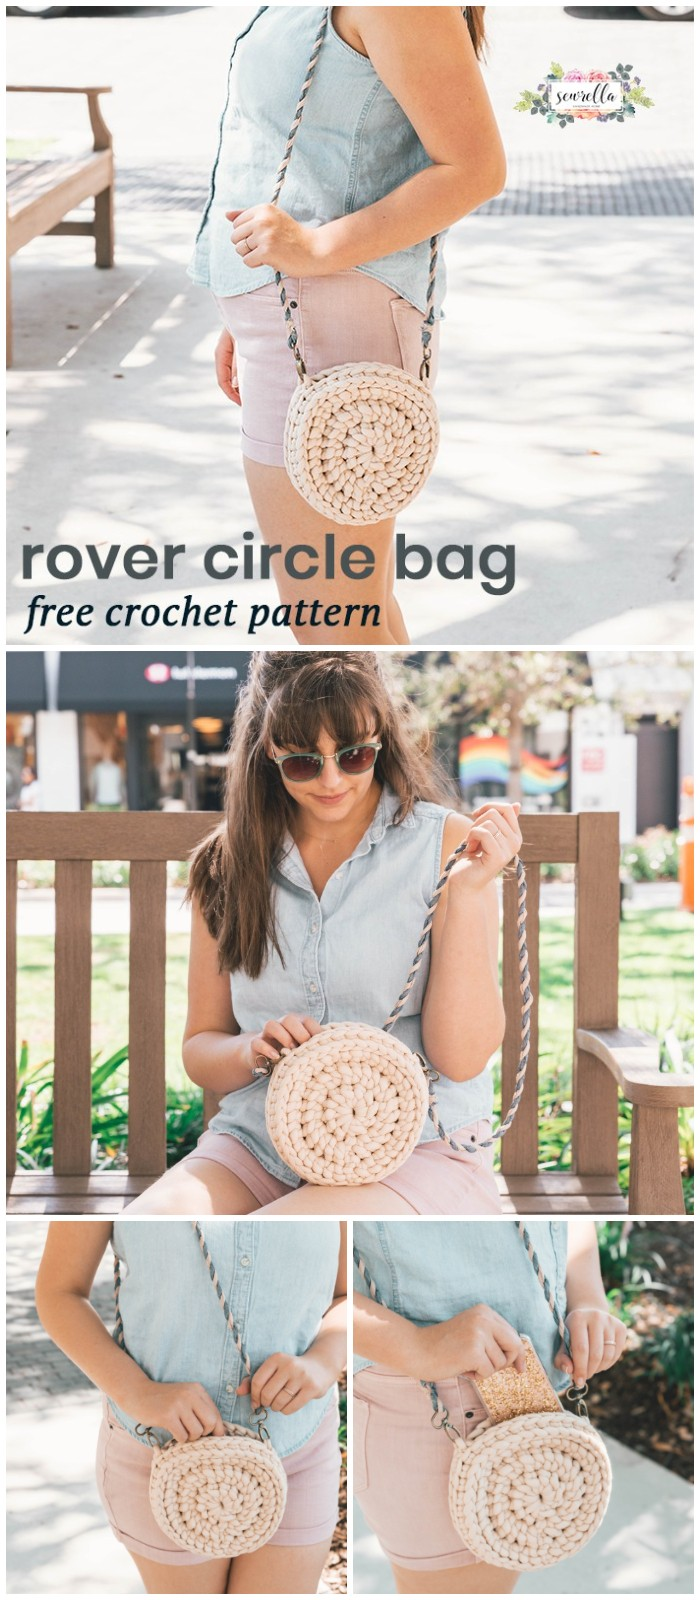 Crochet Rover Circle Bag (with Taylor!)